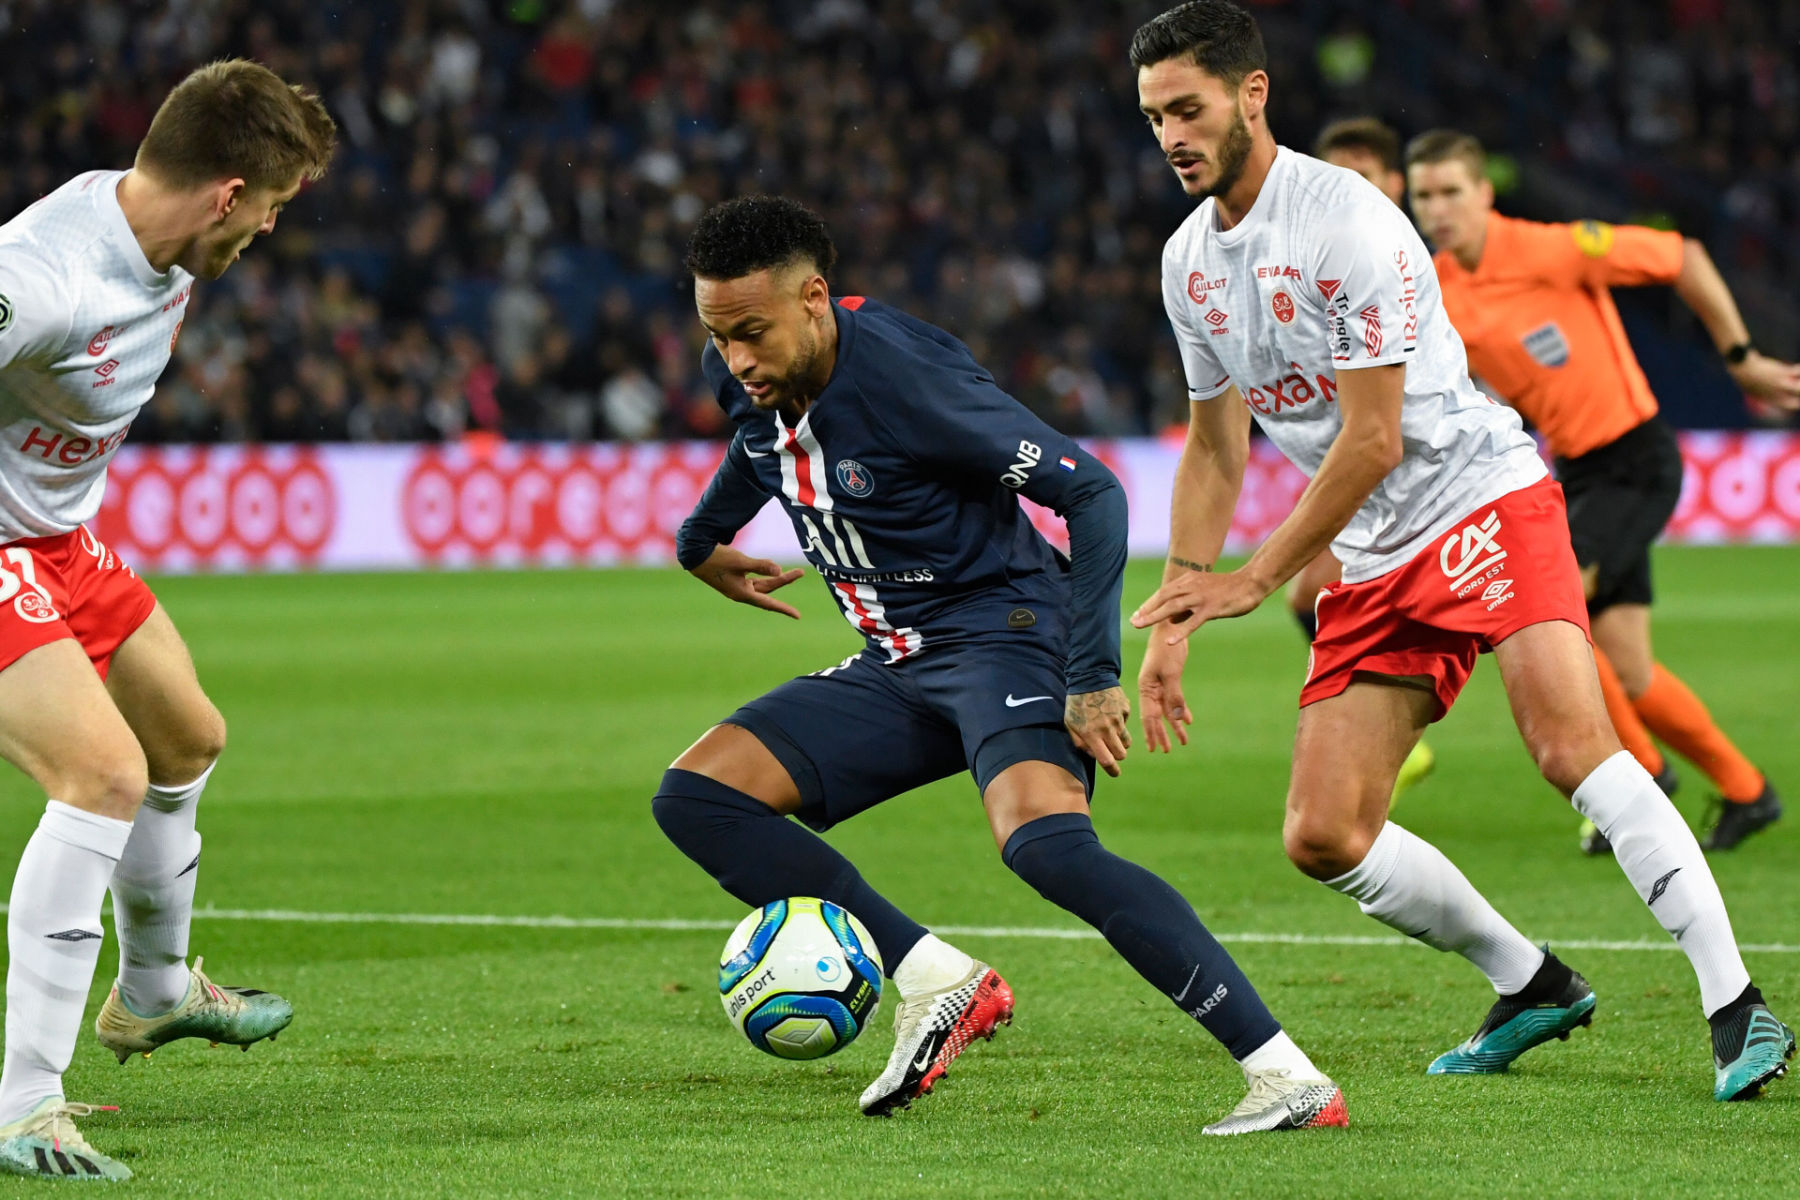 Reims vs PSG live streaming for free, Lionel Messi ...